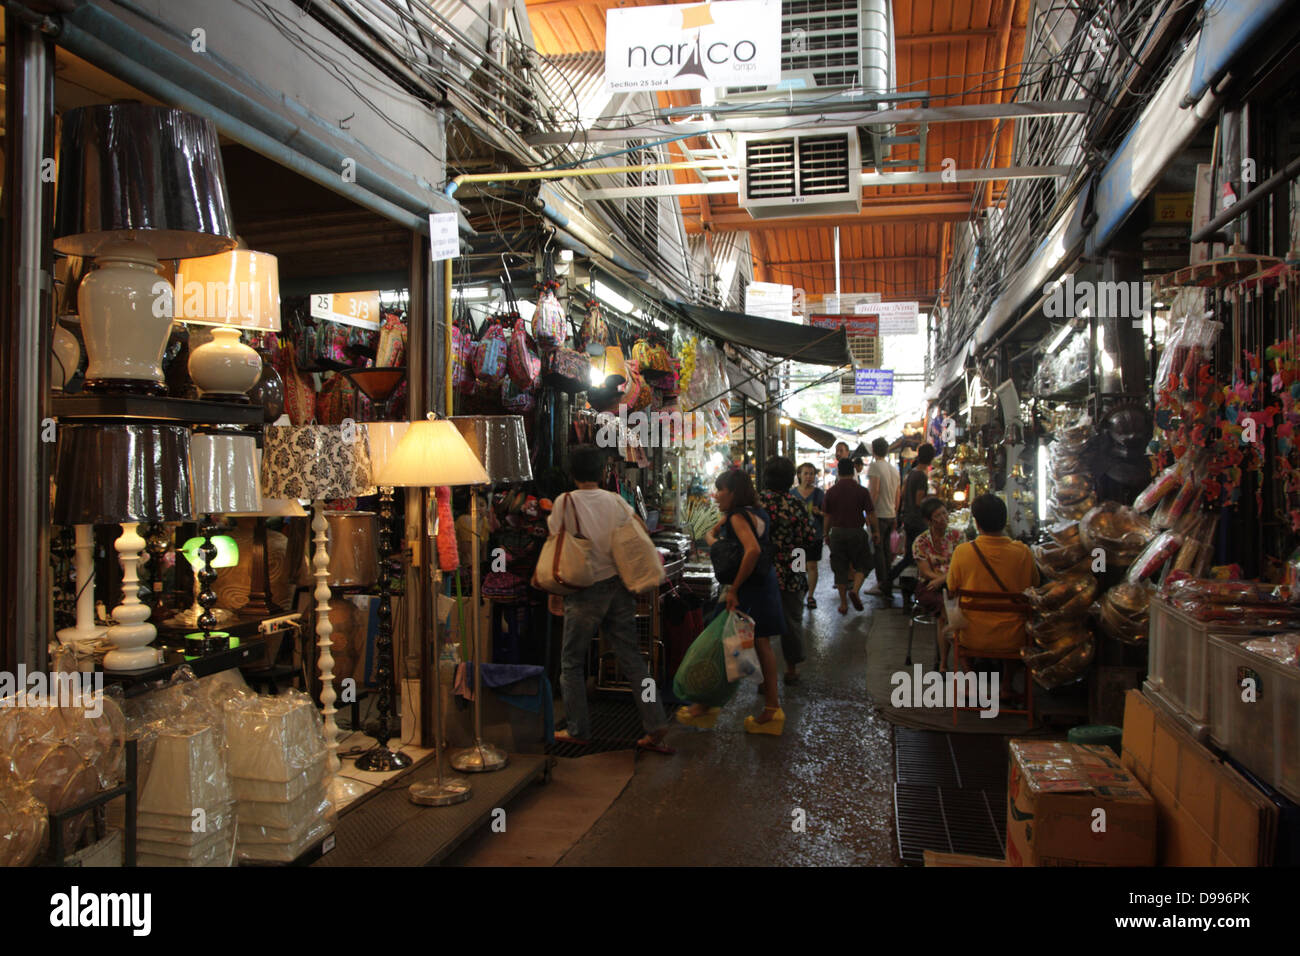 Home Decor Market Walkway Near A Home Decor Shop At Chatuchak Weekend Market In